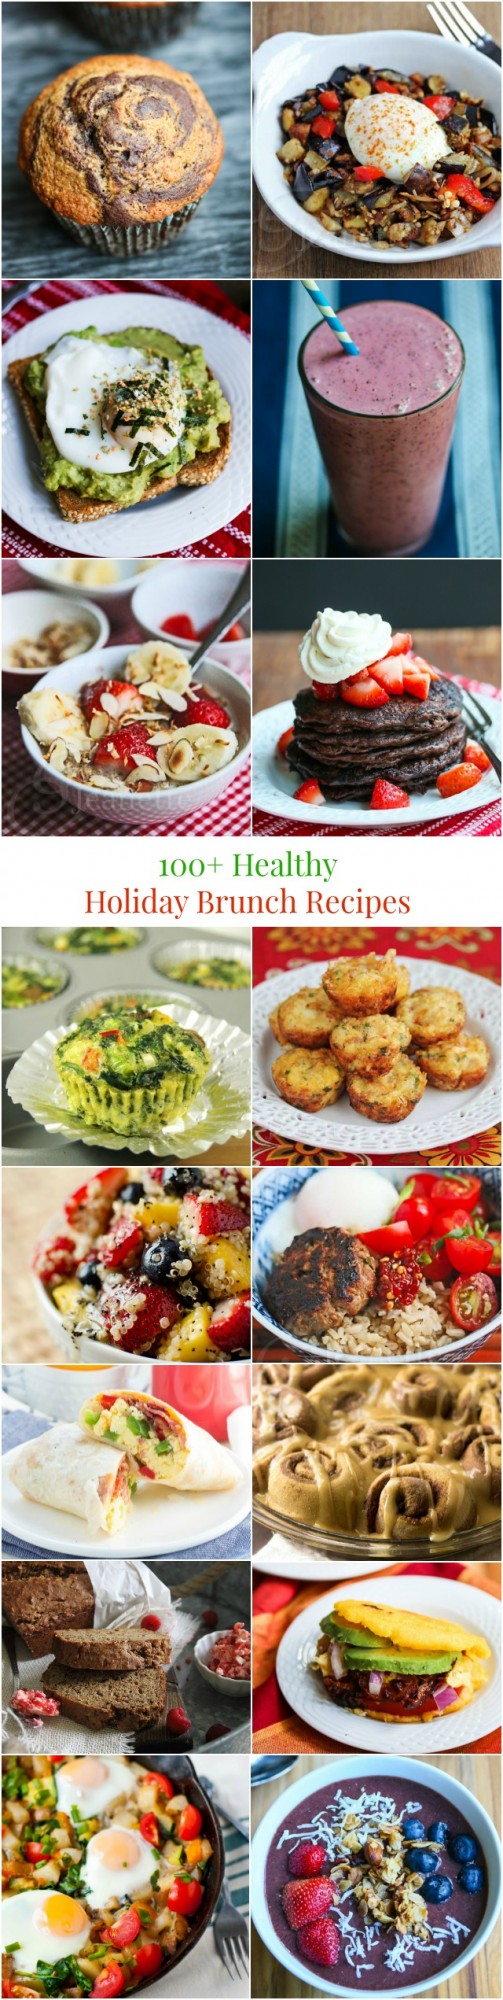 100+ Healthy Holiday Breakfast and Brunch Recipes - Pin this to save this HUGE collection of brunch recipes...pancakes, french toast, breakfast casseroles, hashes, international breakfast foods, smoothies and more!